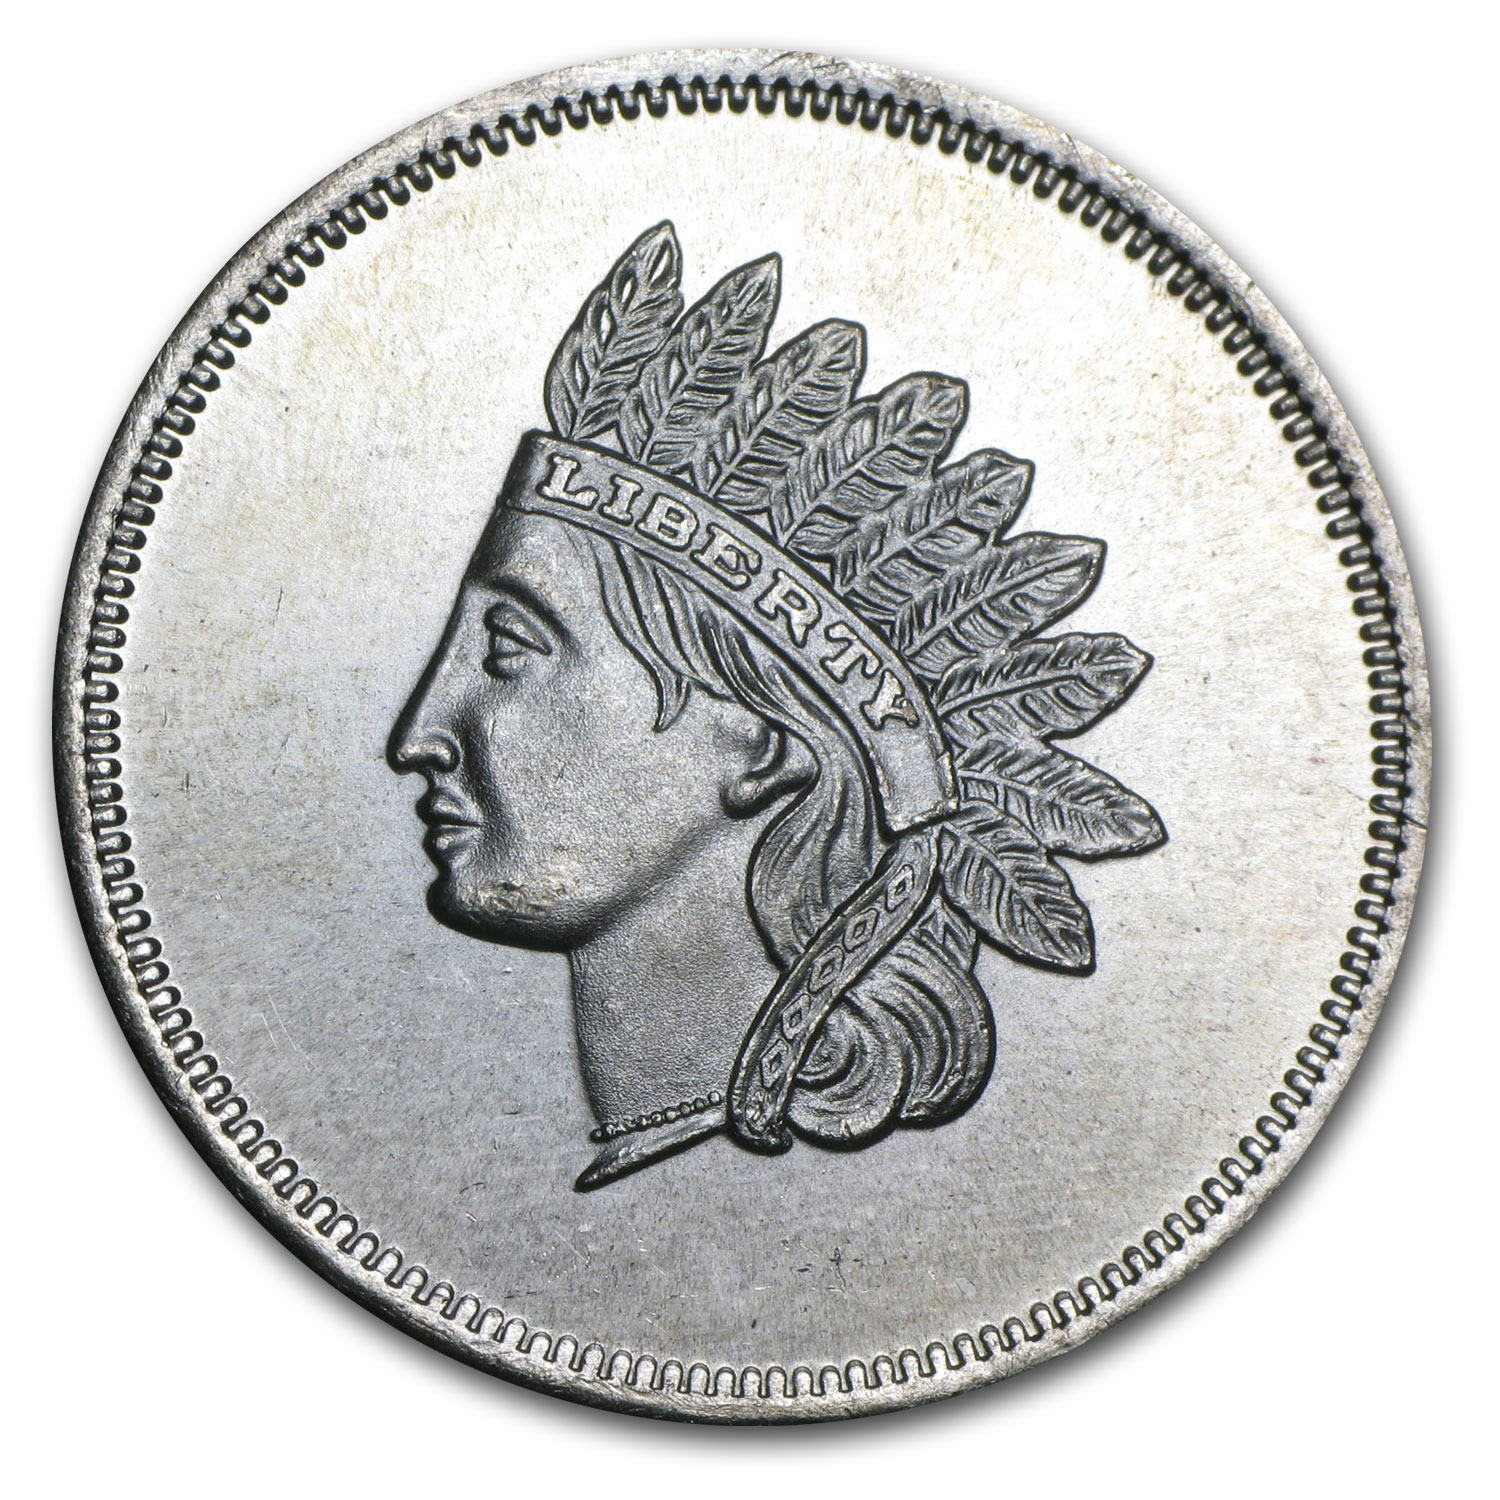 1 oz Silver Round - Indian Head Cent (Replica)